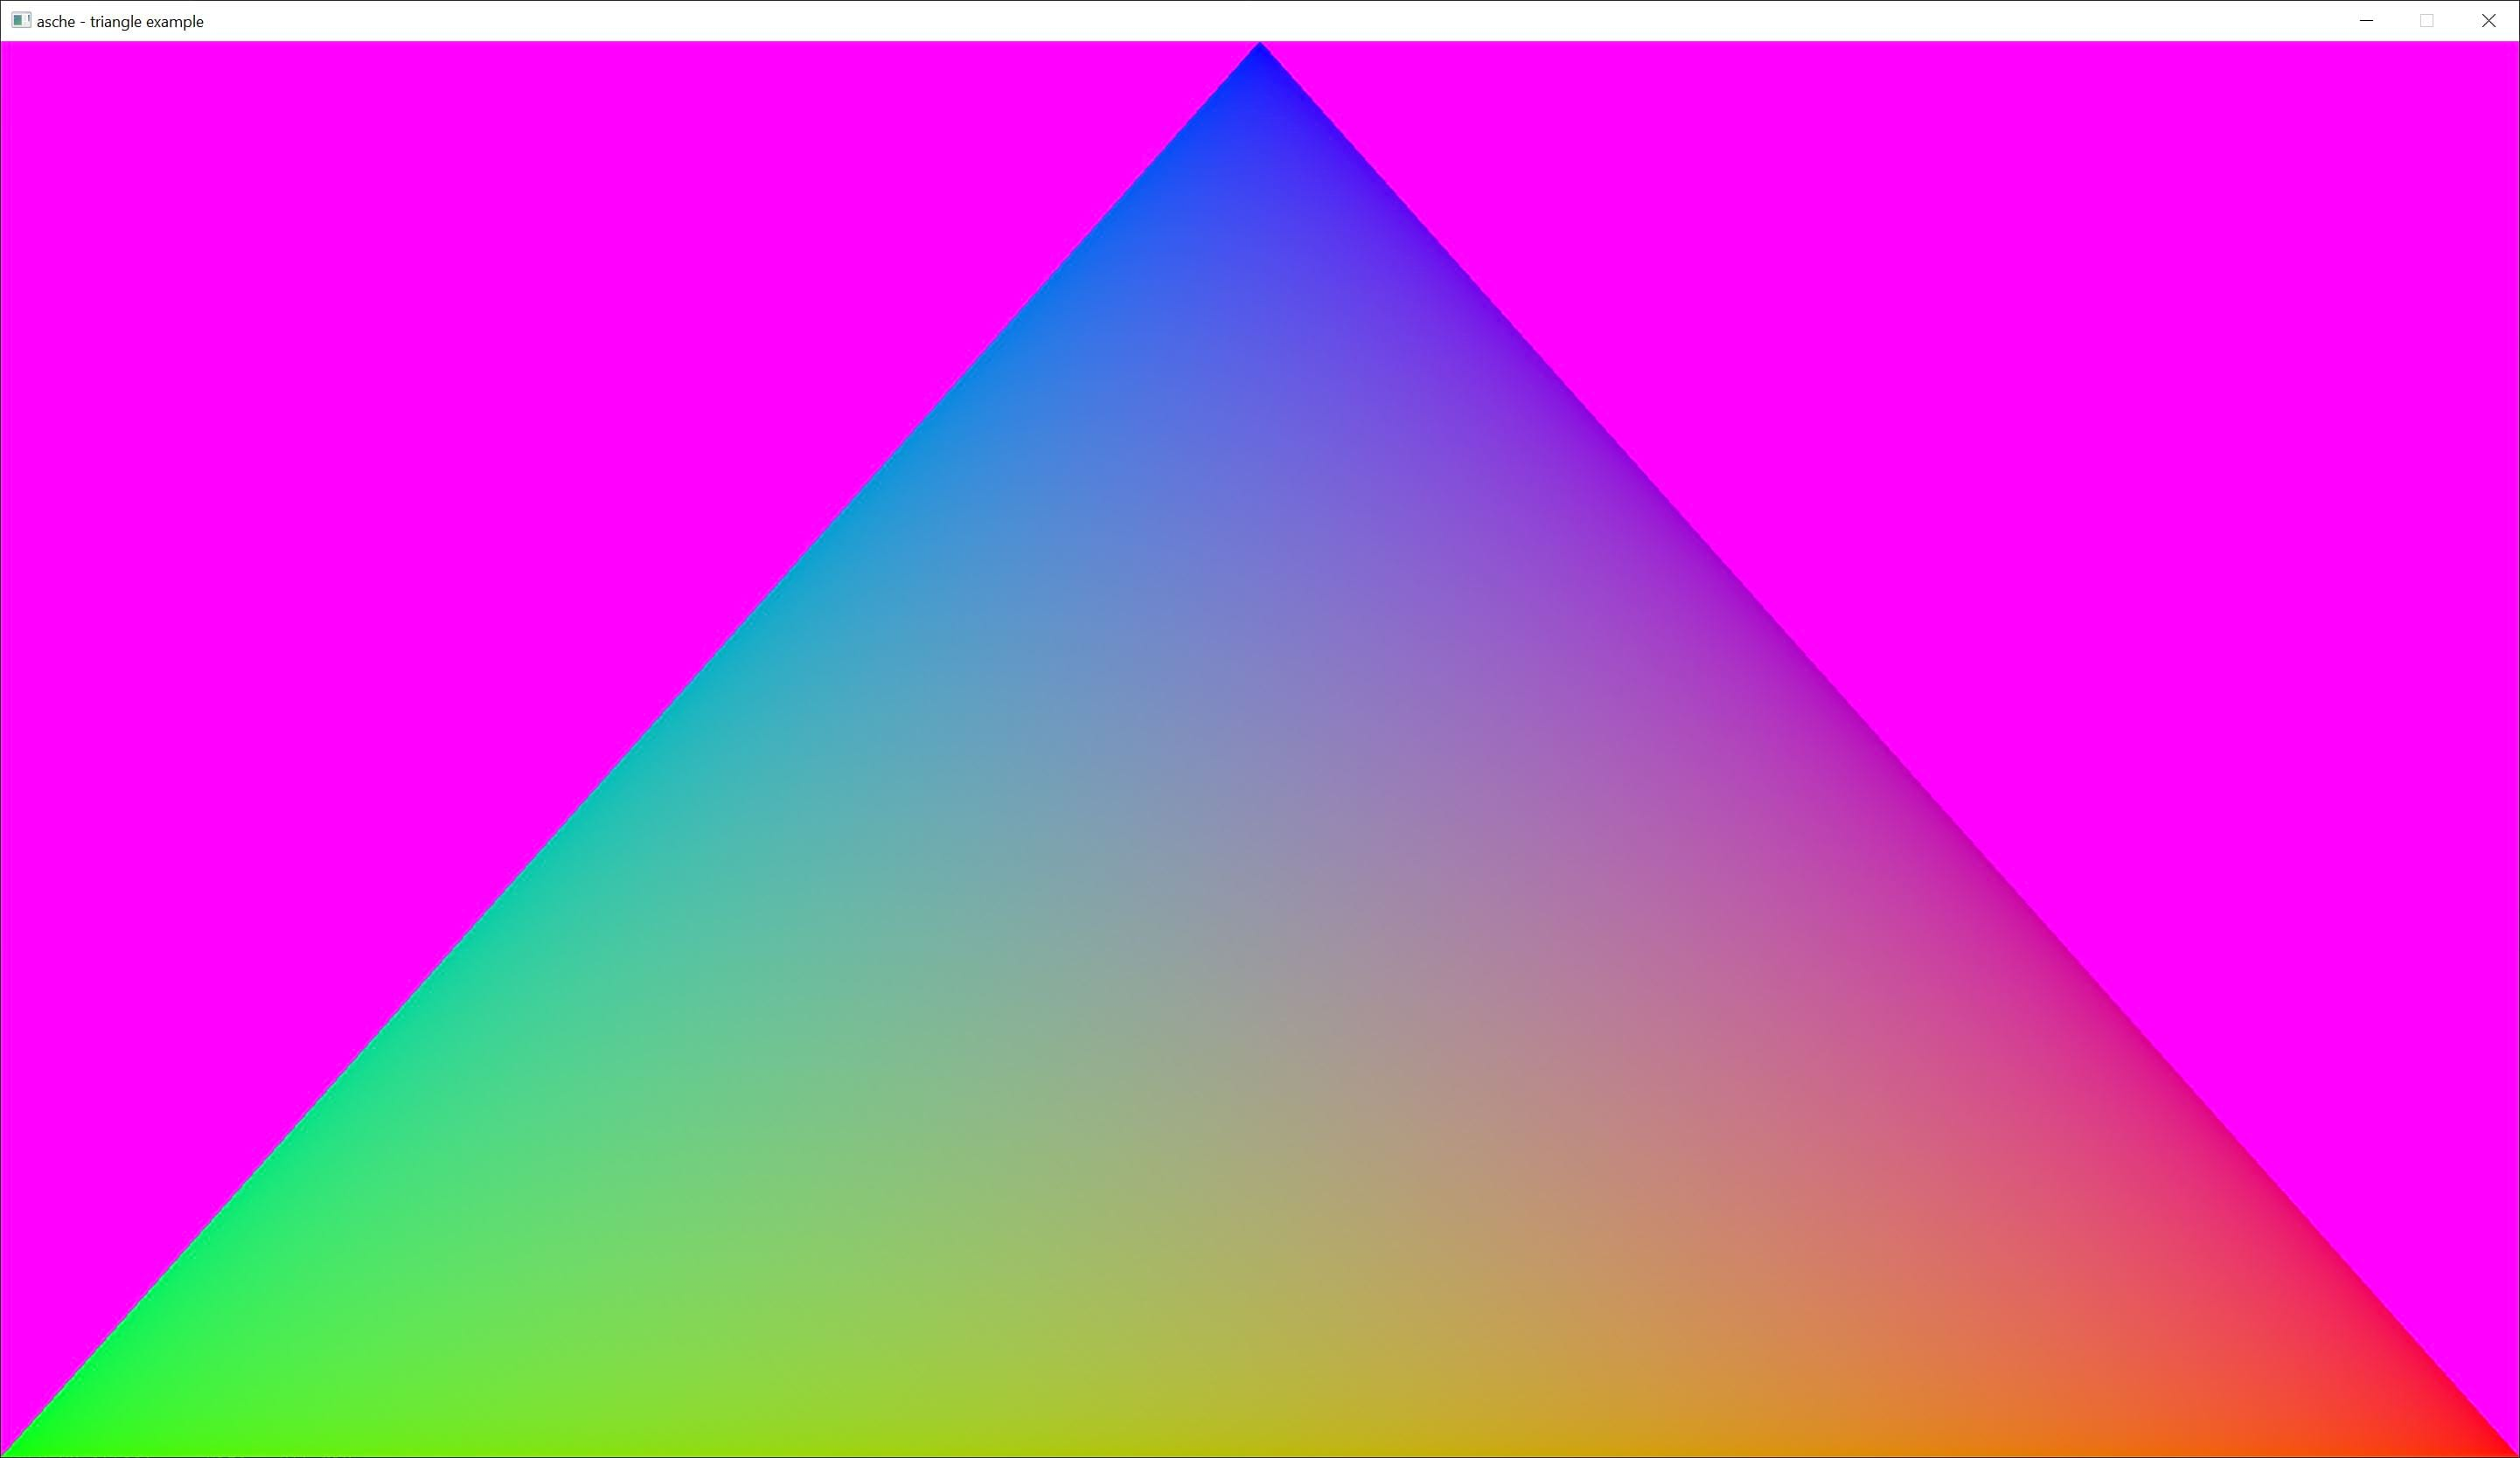 Triangle example